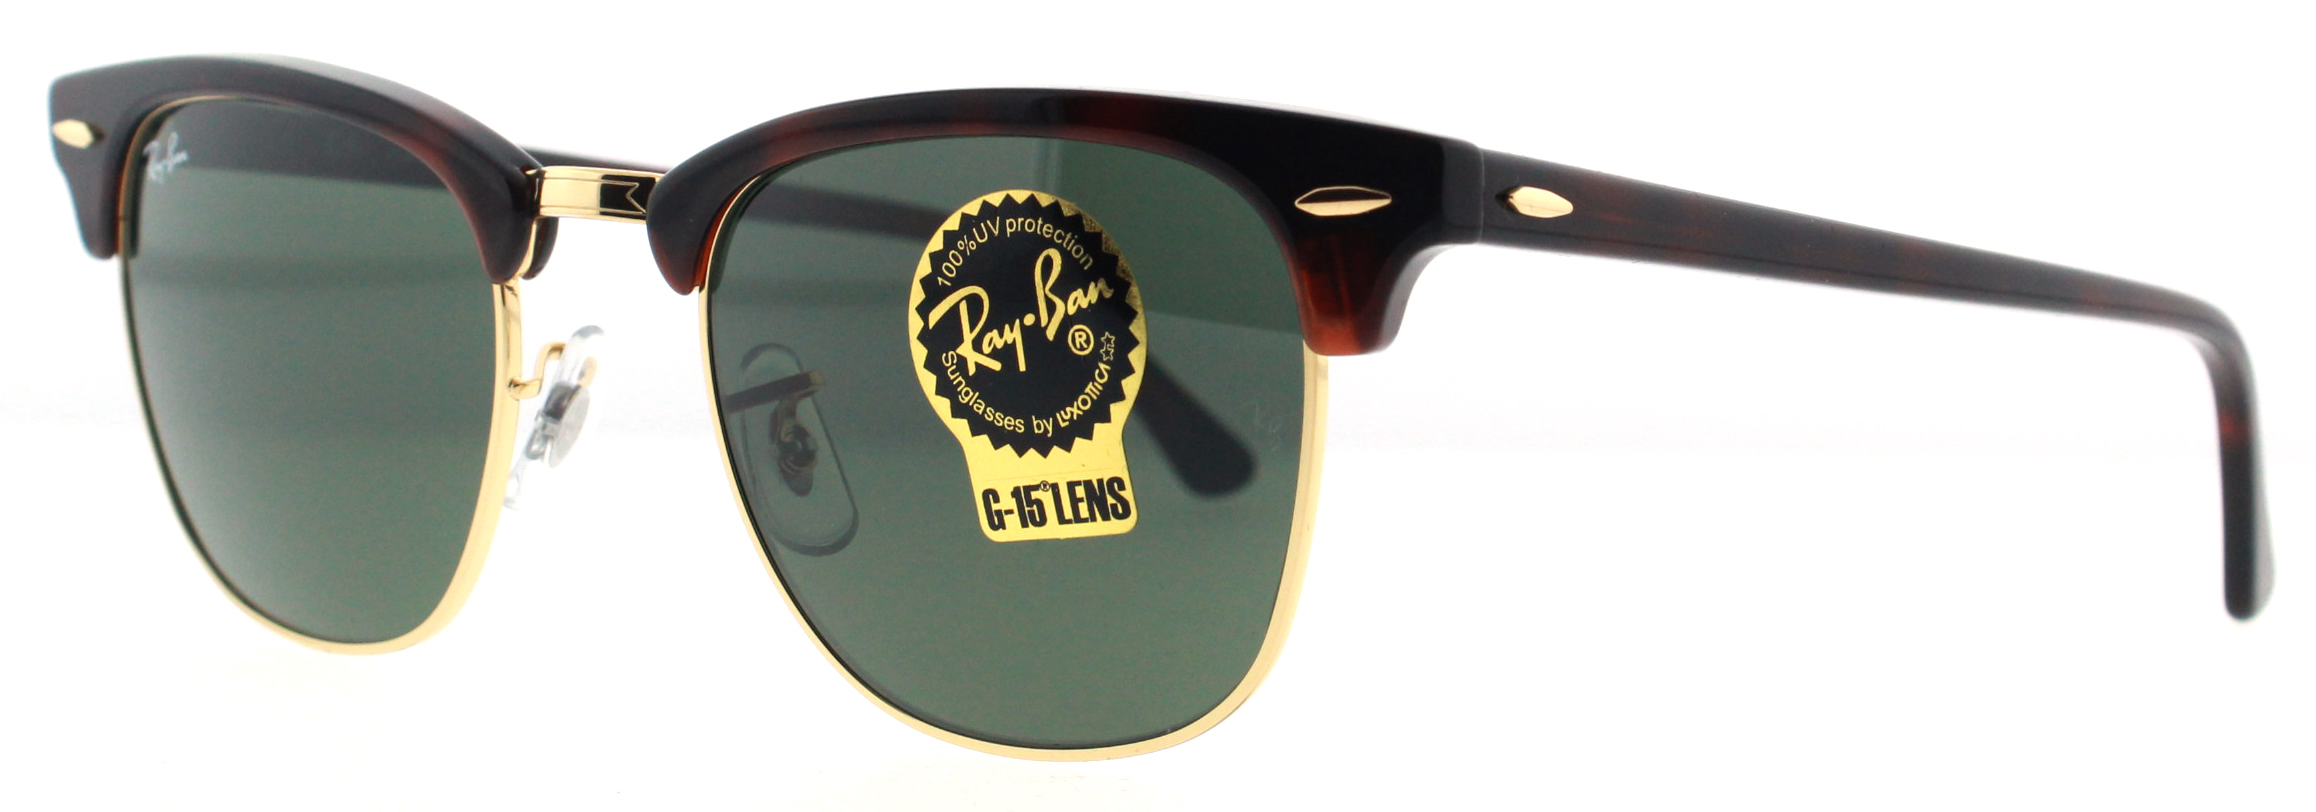 ray ban clubmaster polarized tortoise  Ray Ban RB 3016 Clubmaster Unisex Sunglasses- Black and Tortoise ...